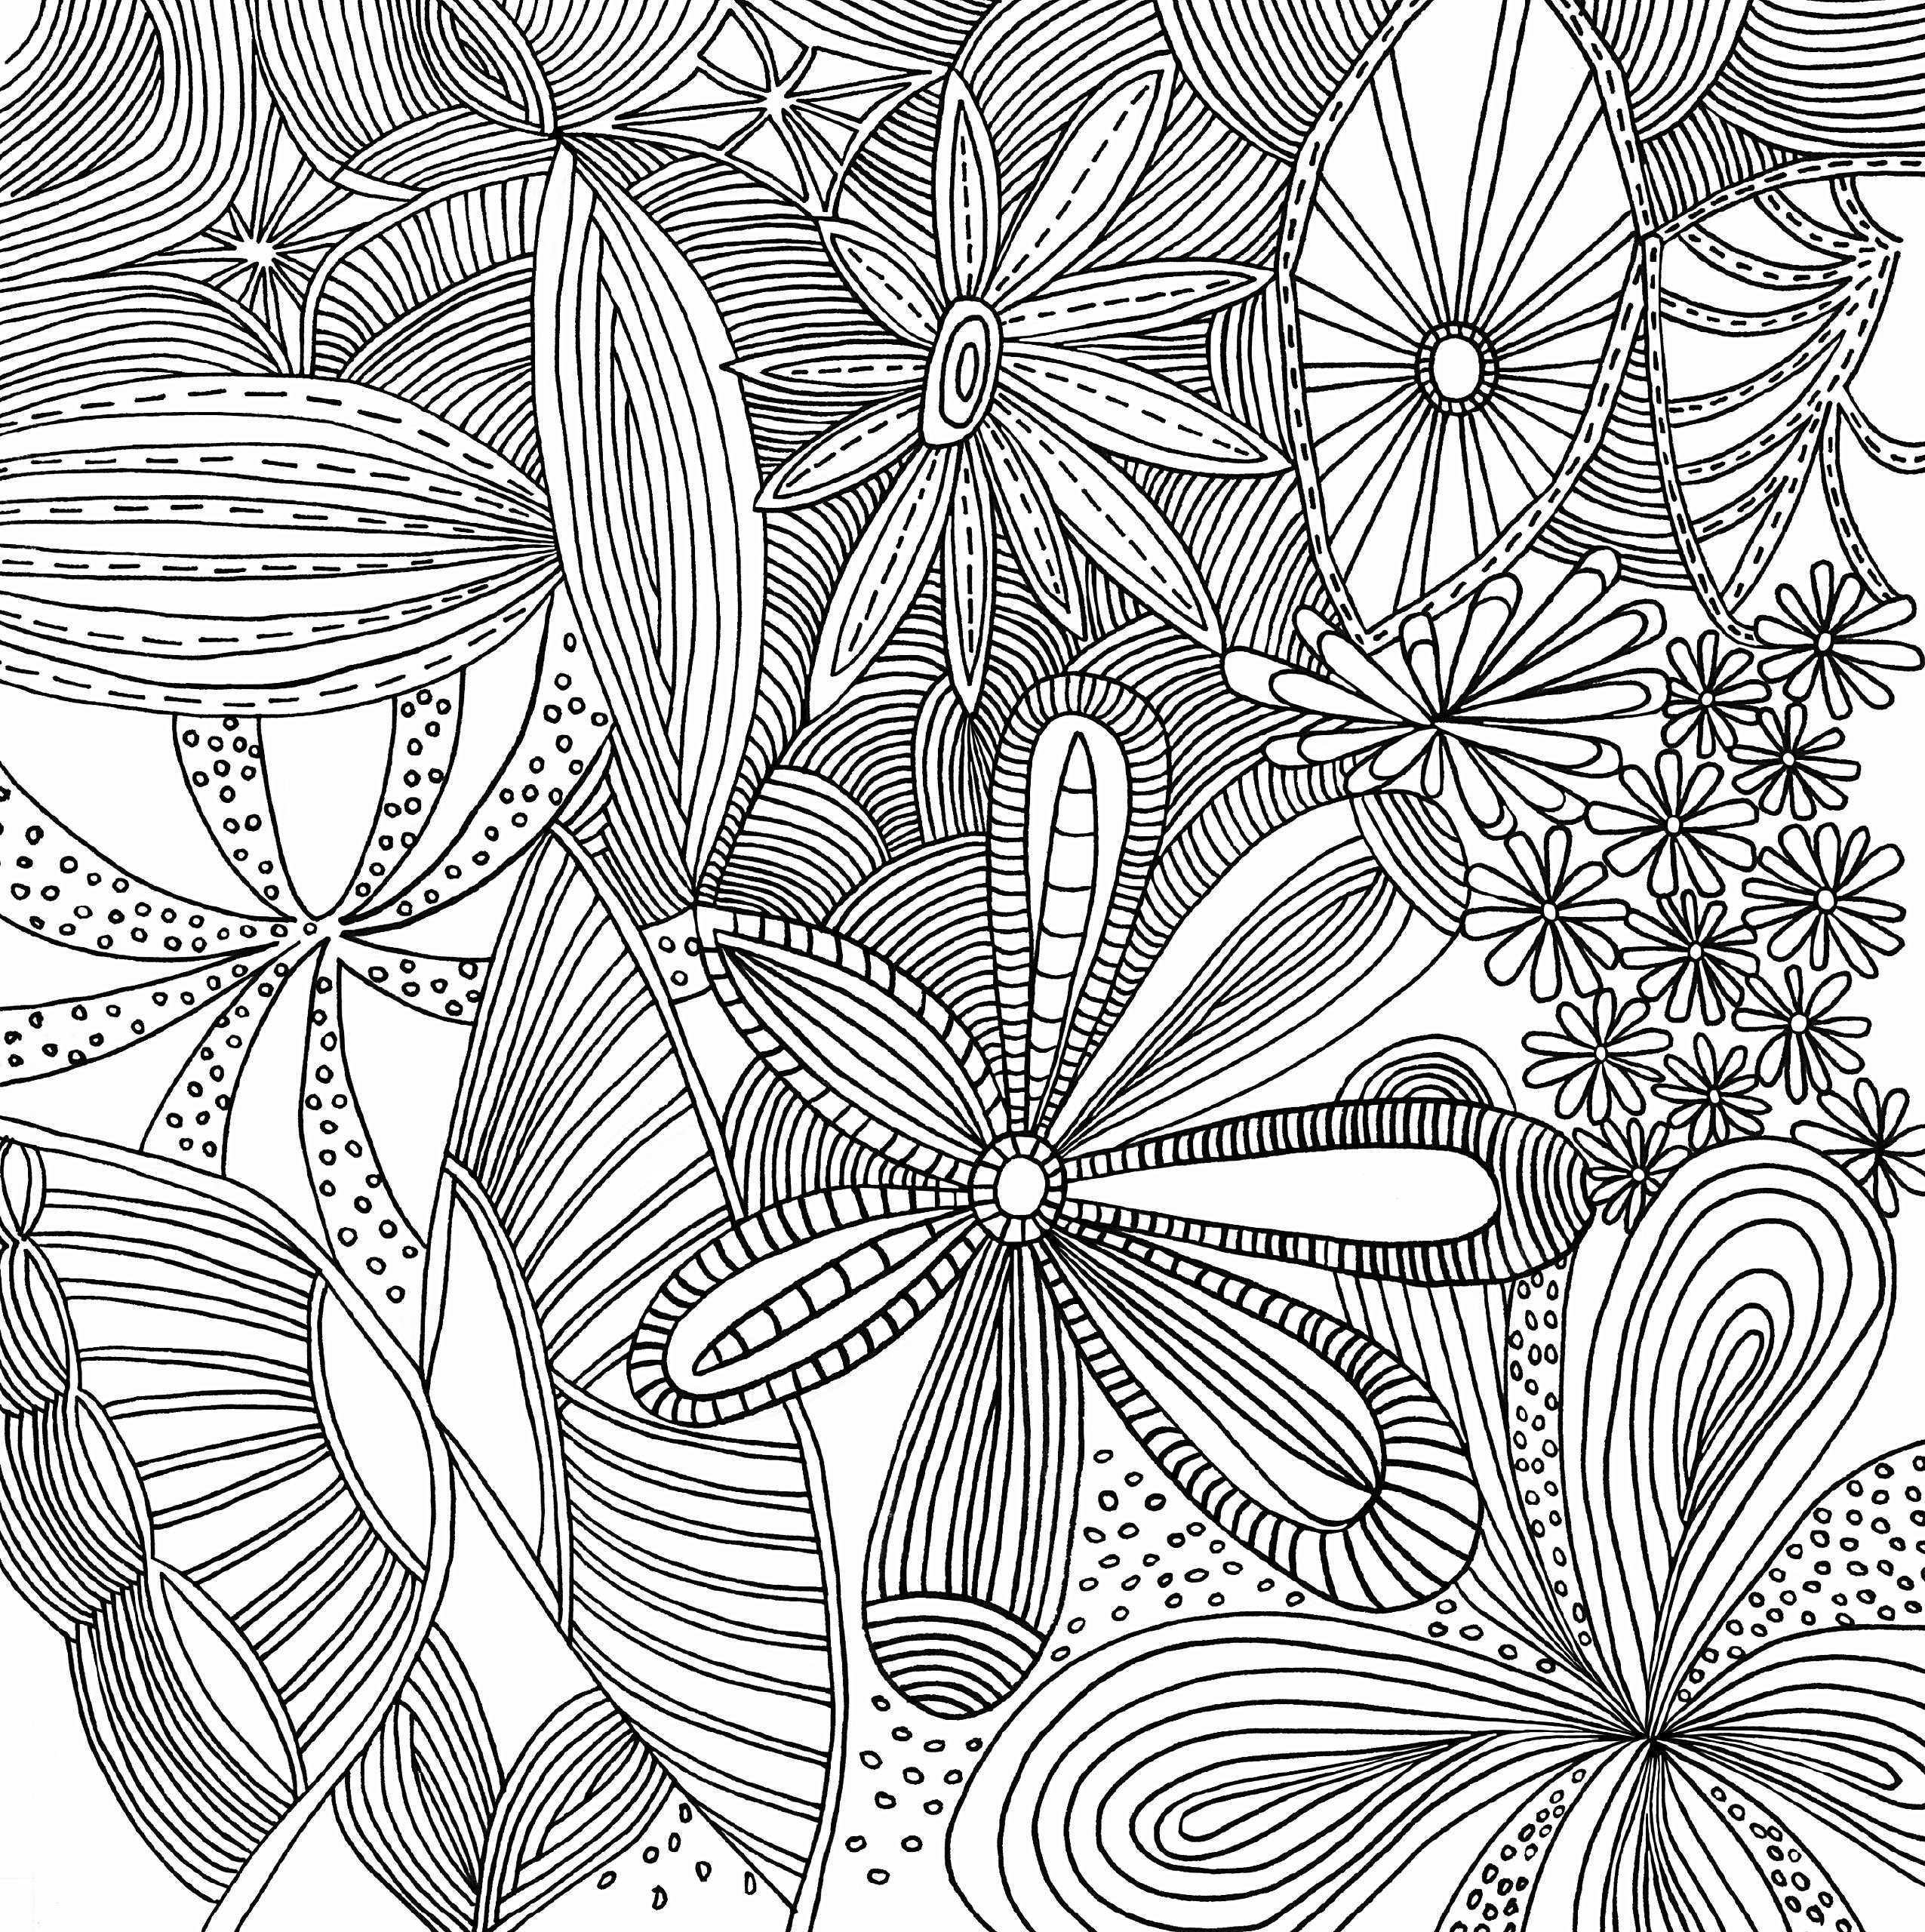 Felt Coloring Pages  Collection 15s - Free For kids